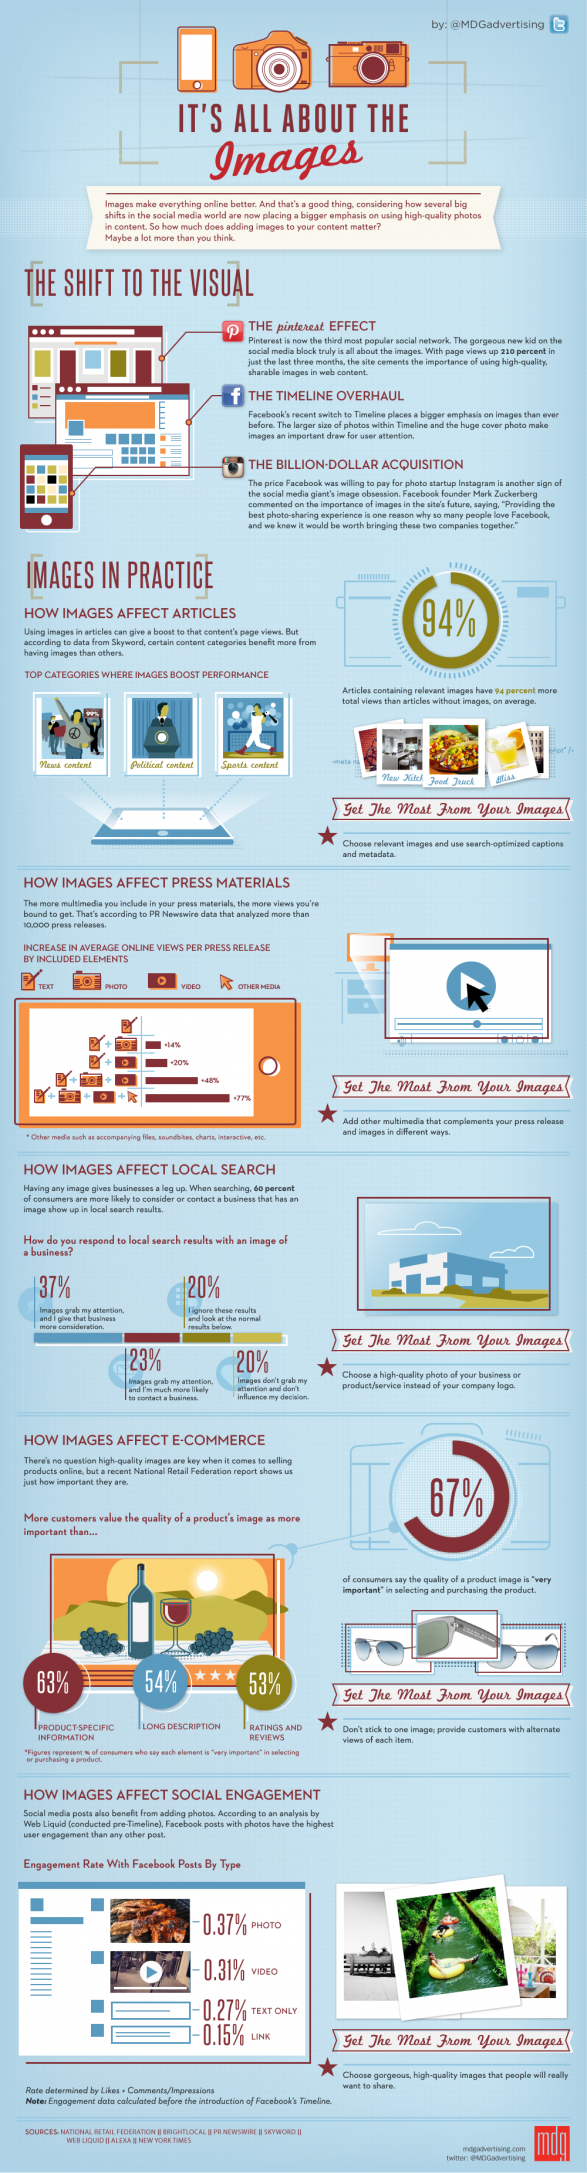 ItsAllAbouttheImagesInfographic 4fb10f2a8d905 w587 Infographic Fun: Its All About The Images